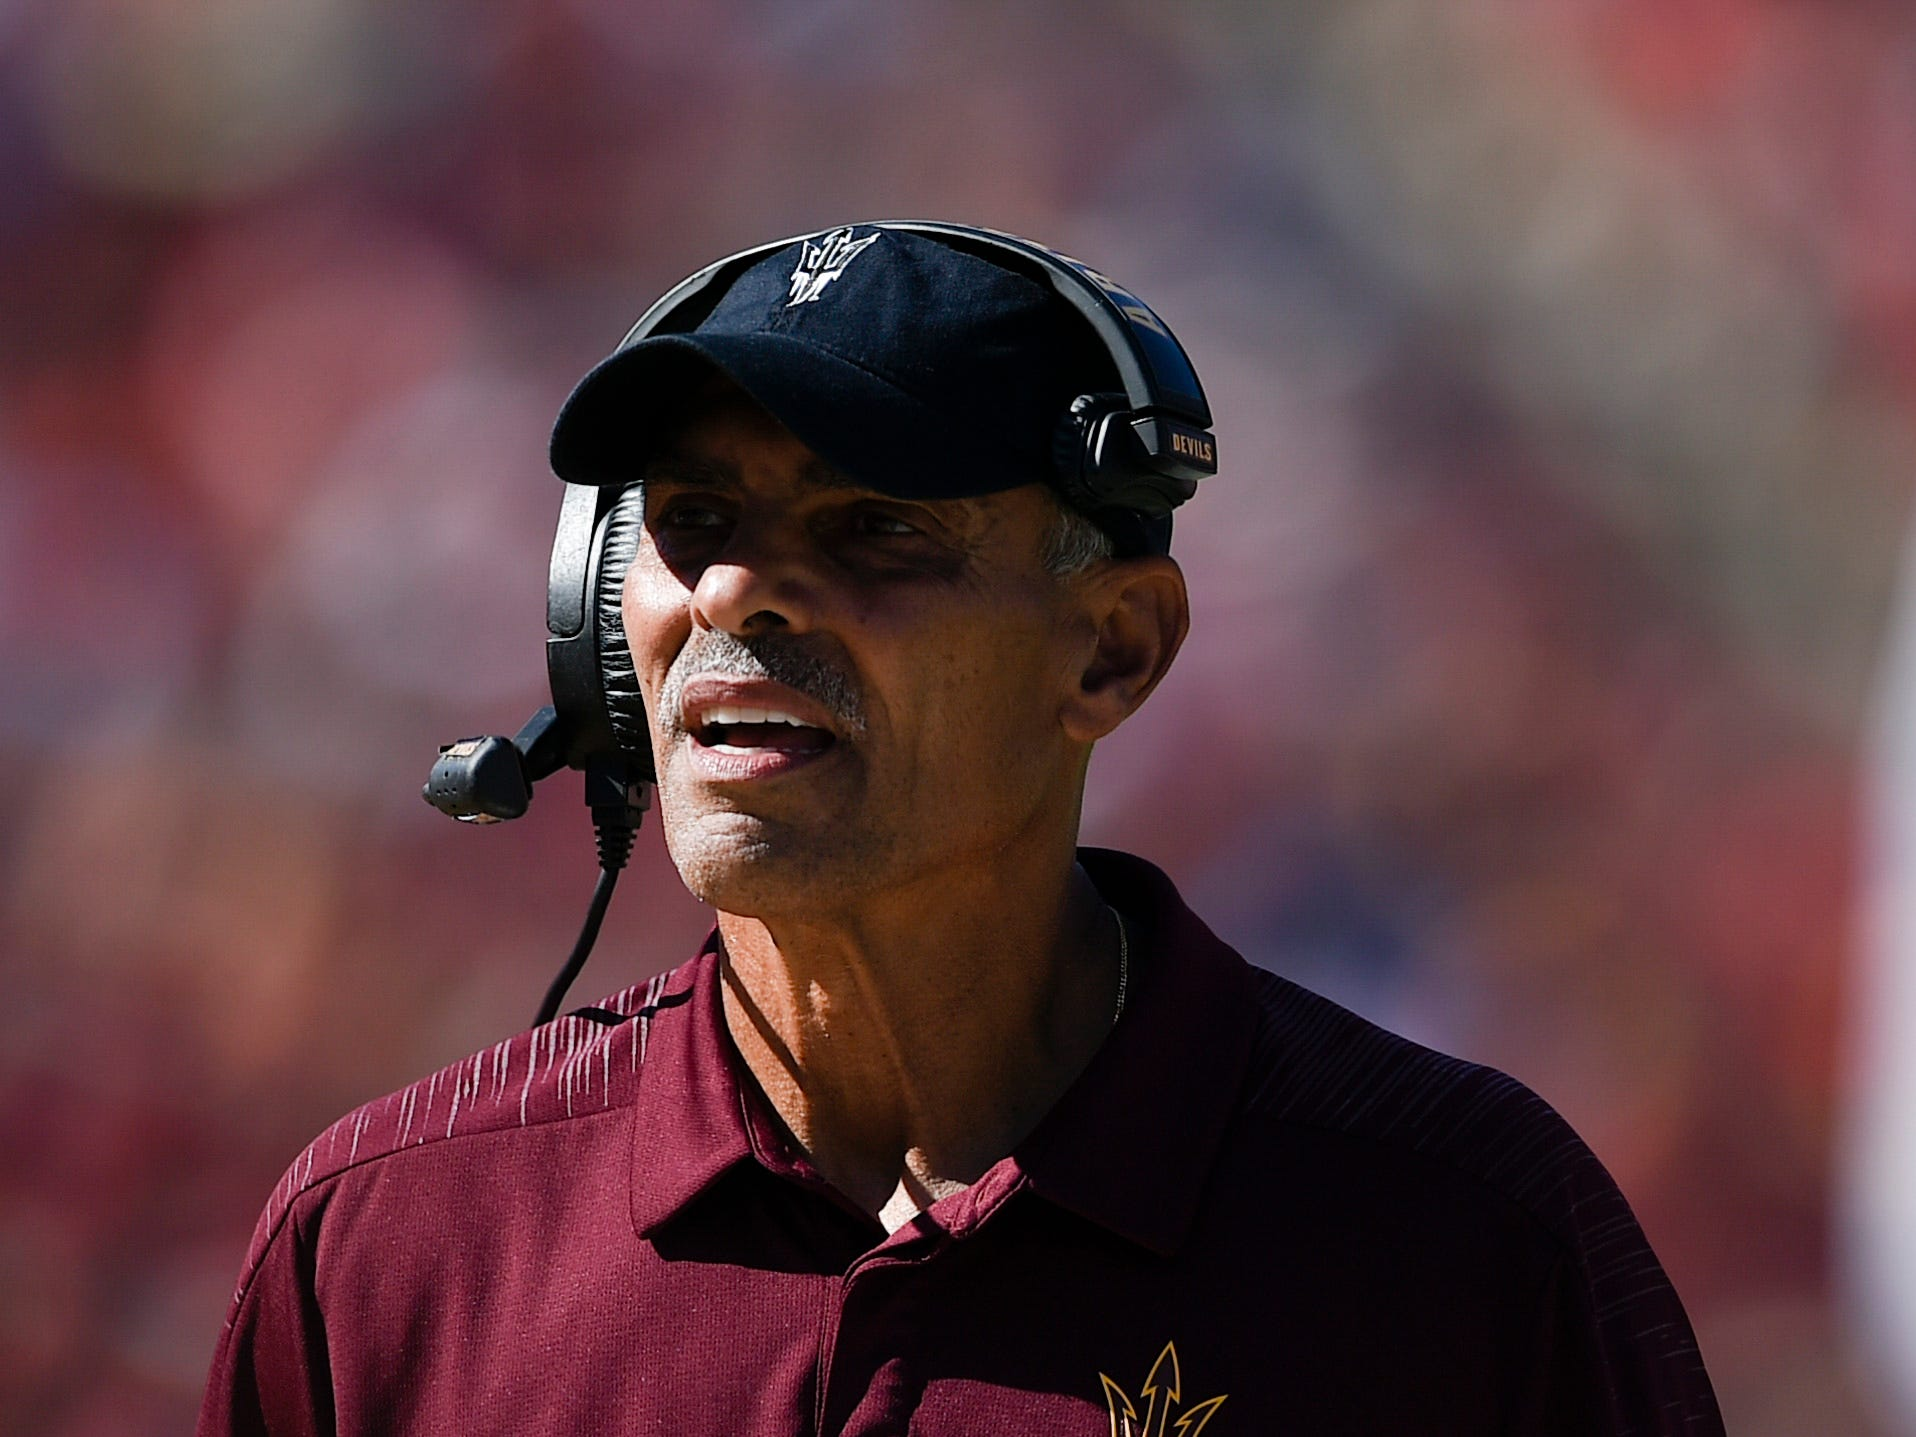 Oct 27, 2018; Los Angeles, CA, USA; Arizona State Sun Devils head coach Herm Edwards looks on from the sidelines during the first half against the Southern California Trojans at Los Angeles Memorial Coliseum. Mandatory Credit: Kelvin Kuo-USA TODAY Sports